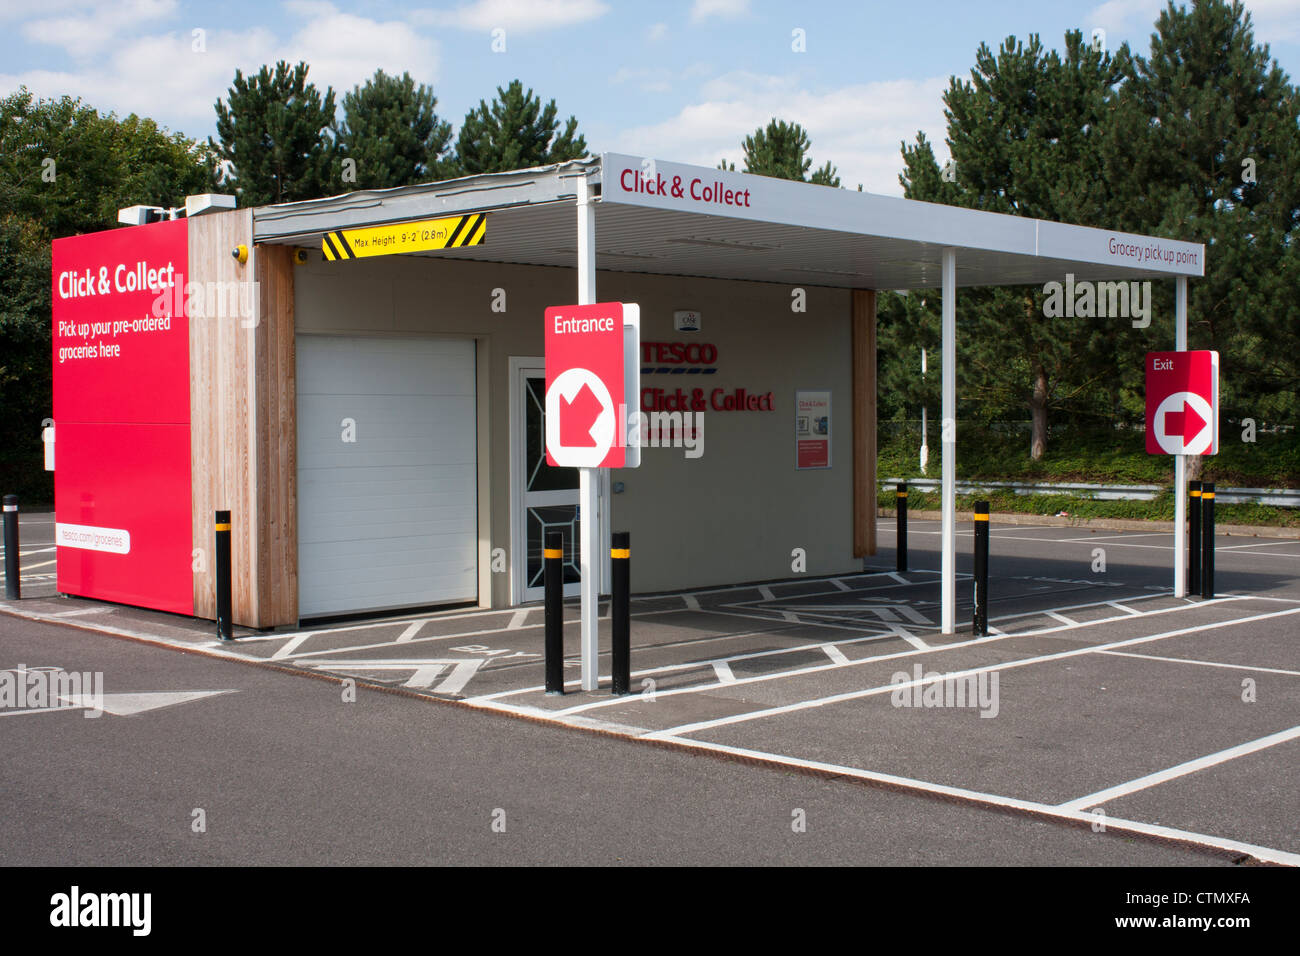 A Tesco supermarket Click & Collect outlet. - Stock Image